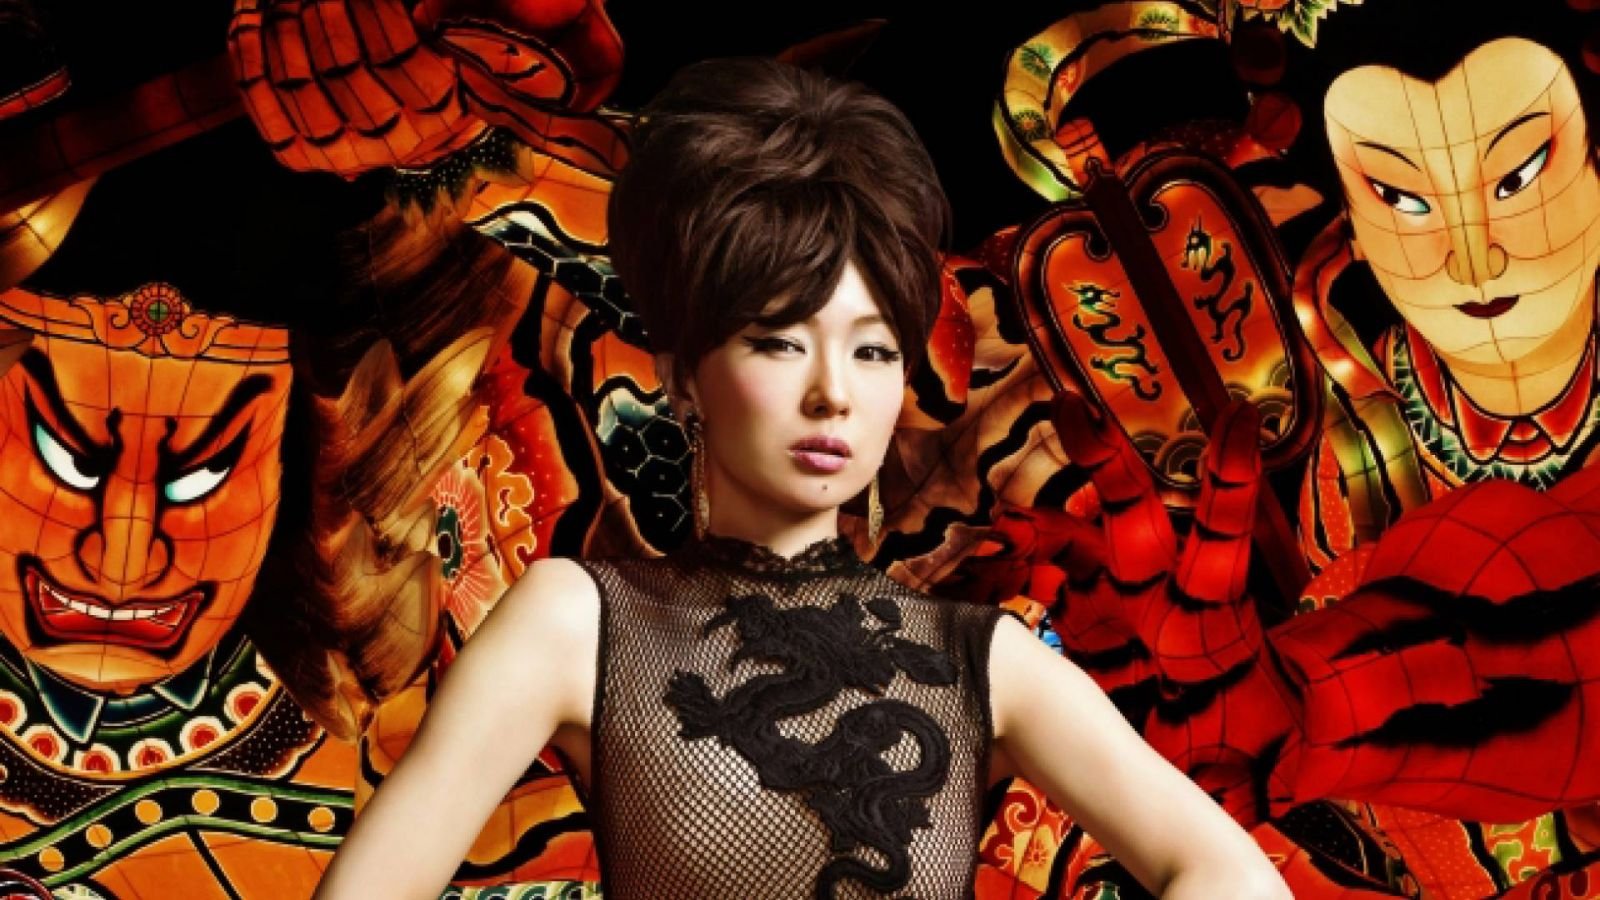 Sheena Ringo © 2015 UNIVERSAL MUSIC LLC, provided by PR TIMES Inc.